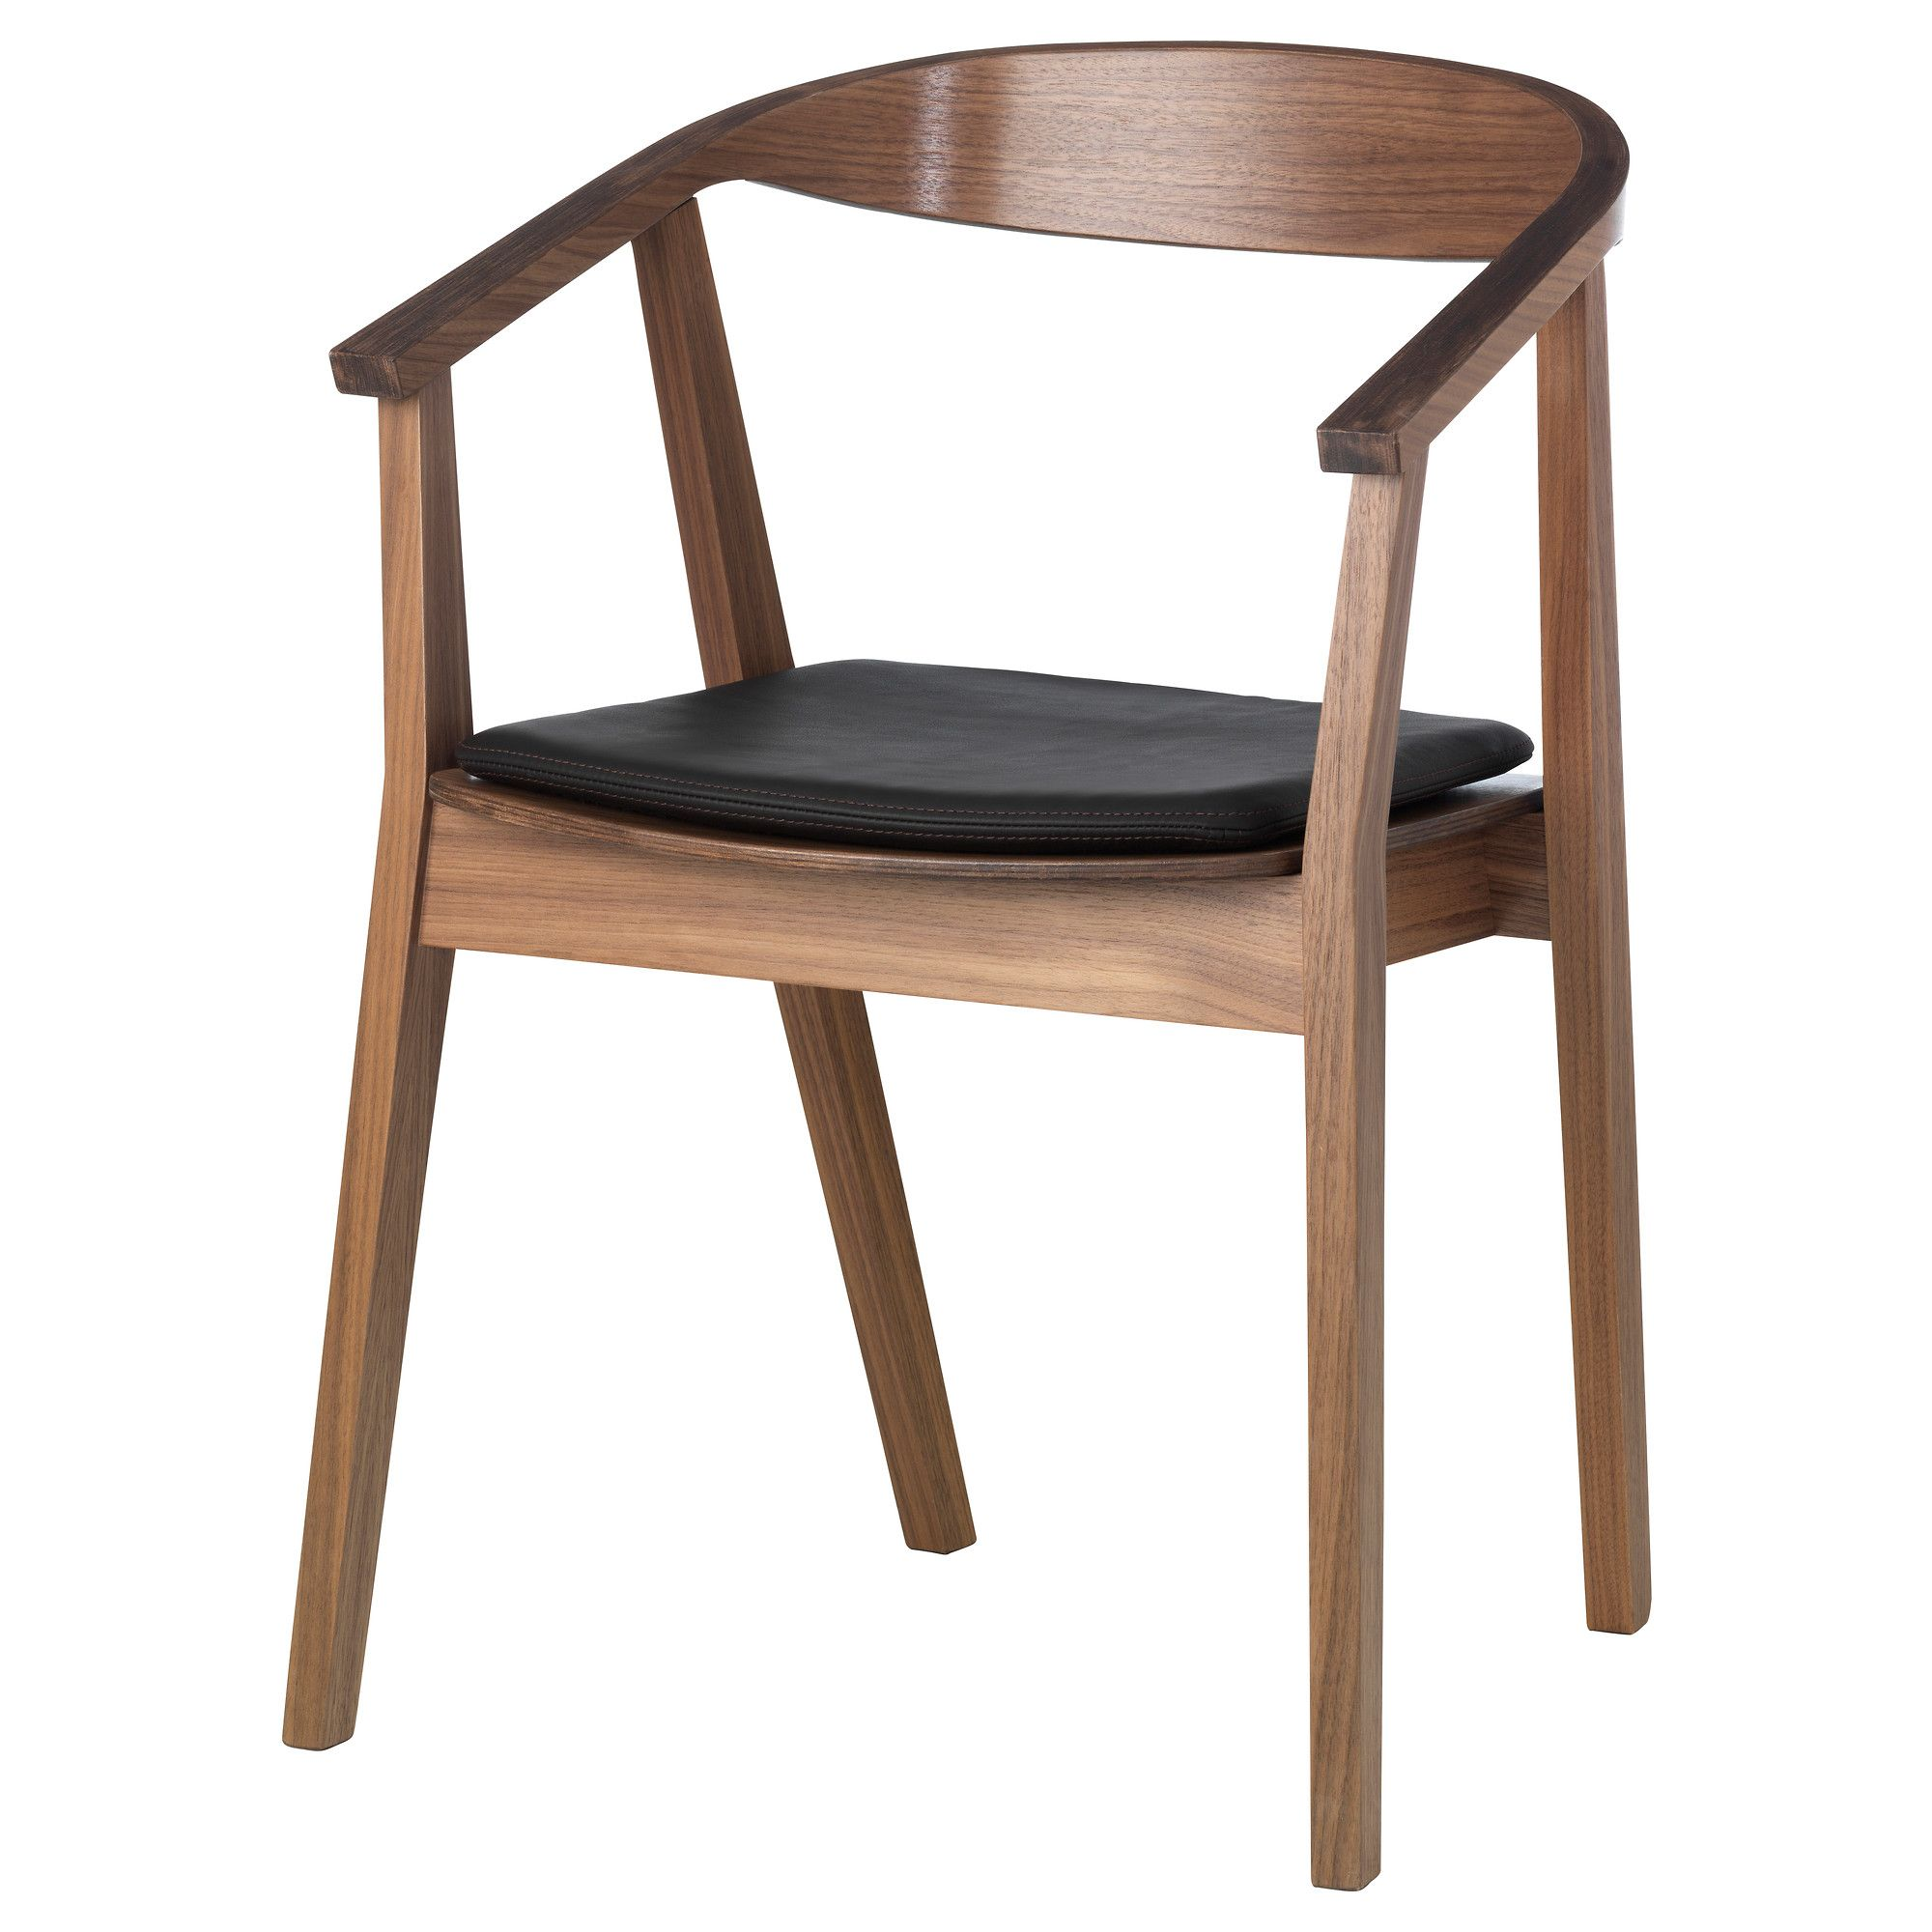 ikea dining chair first step high stockholm with pad walnut veneer dark brown nathan armstrong look at these bad boys